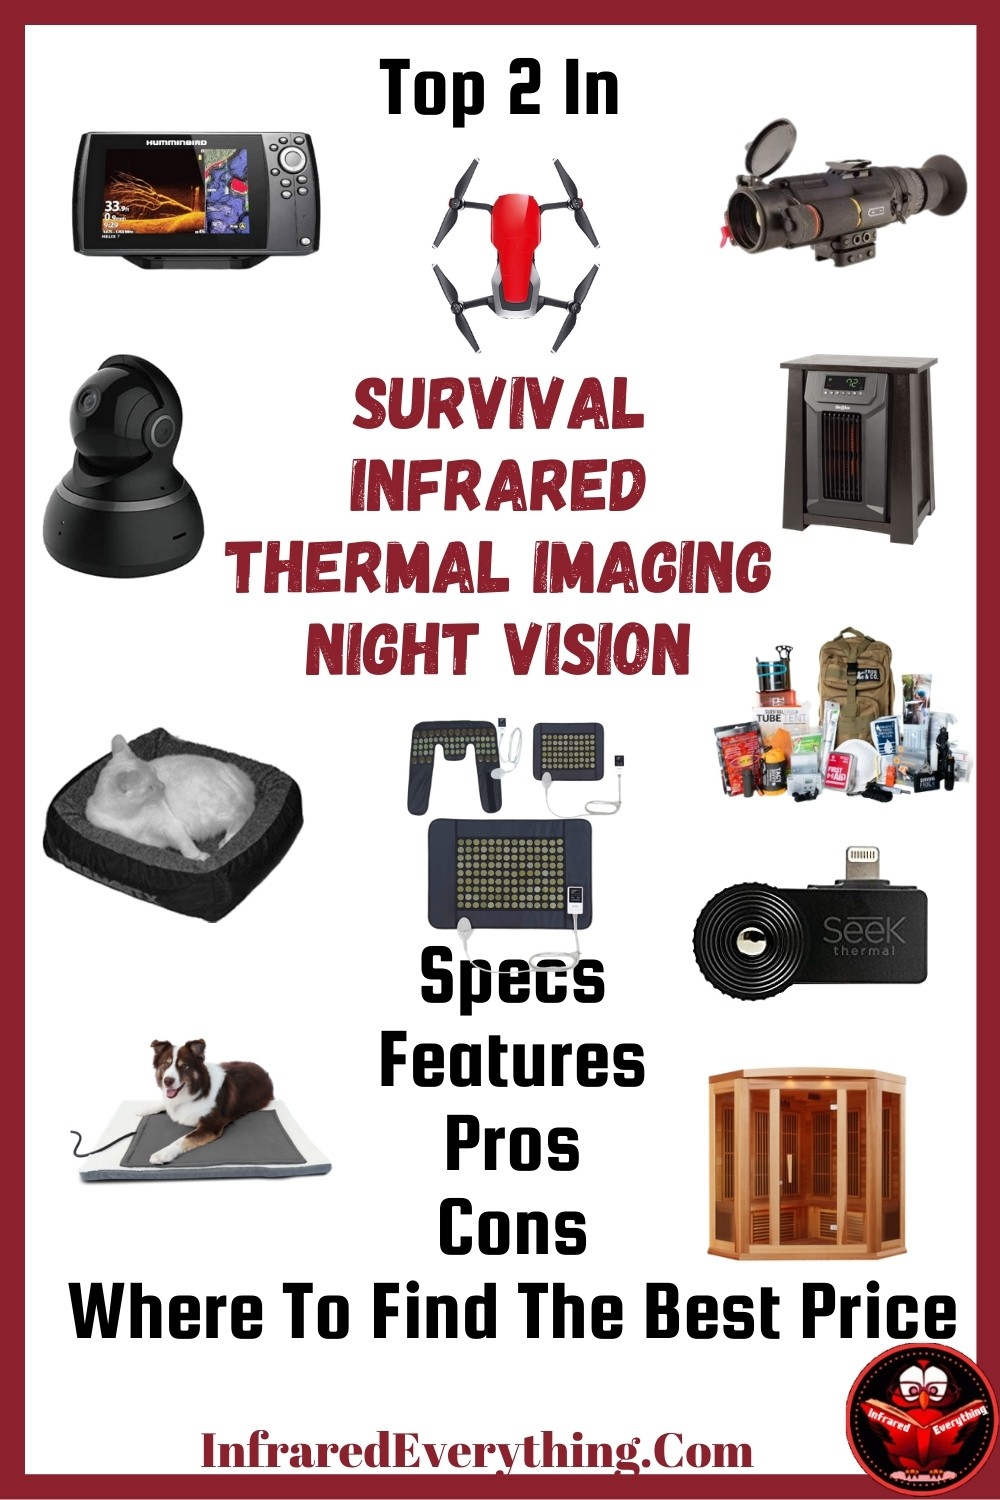 Top 2 in Survival, Infrared, Night Vision and Thermal Imaging Products